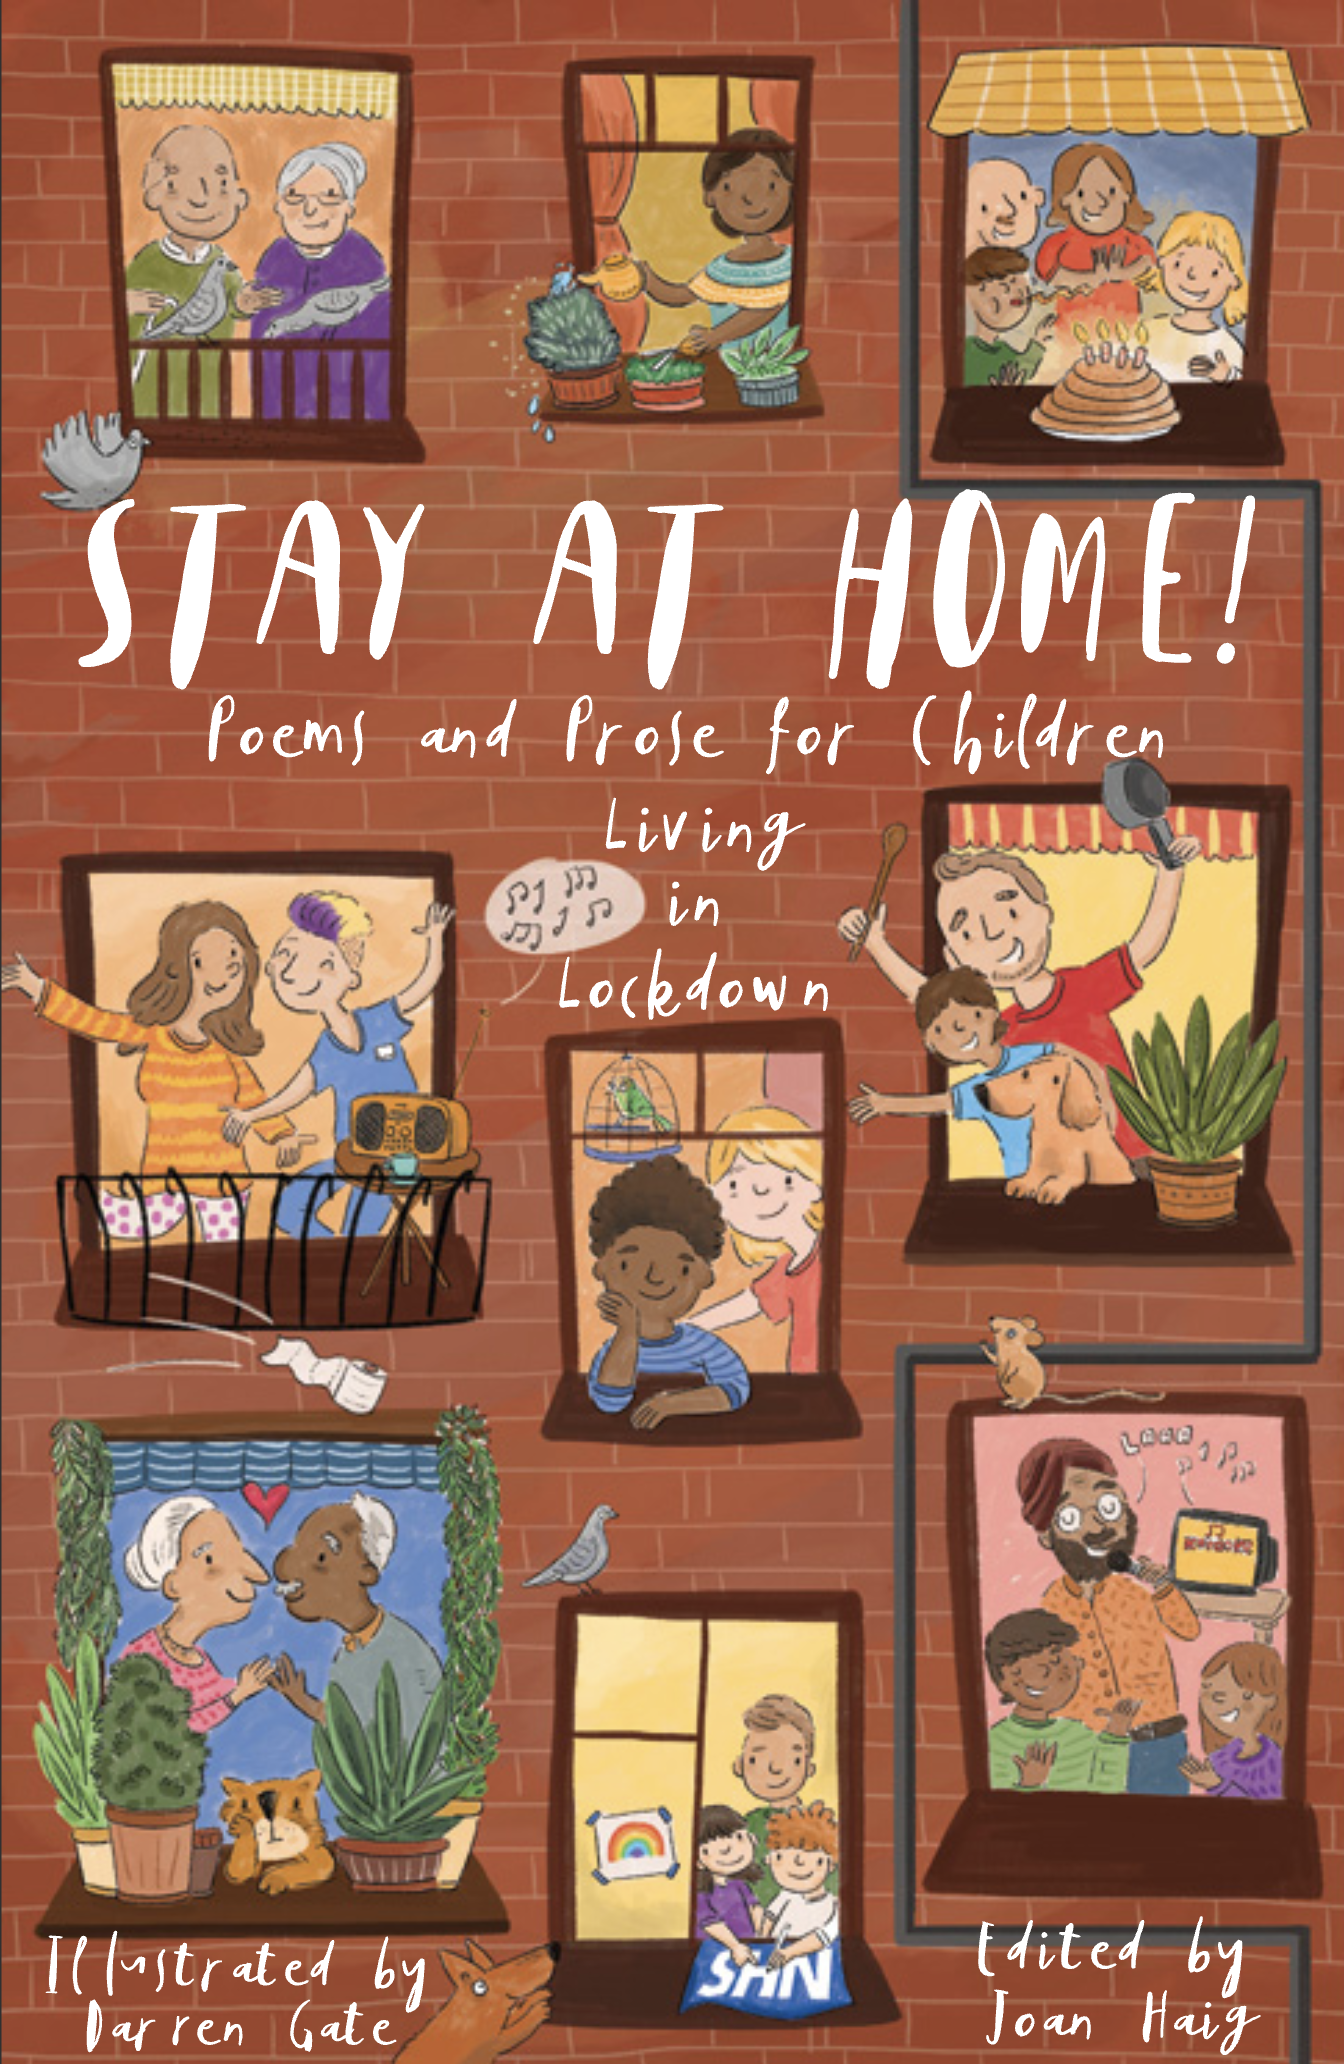 "Stay at Home!"" Poems and Prose for Children Living in Lockdown"